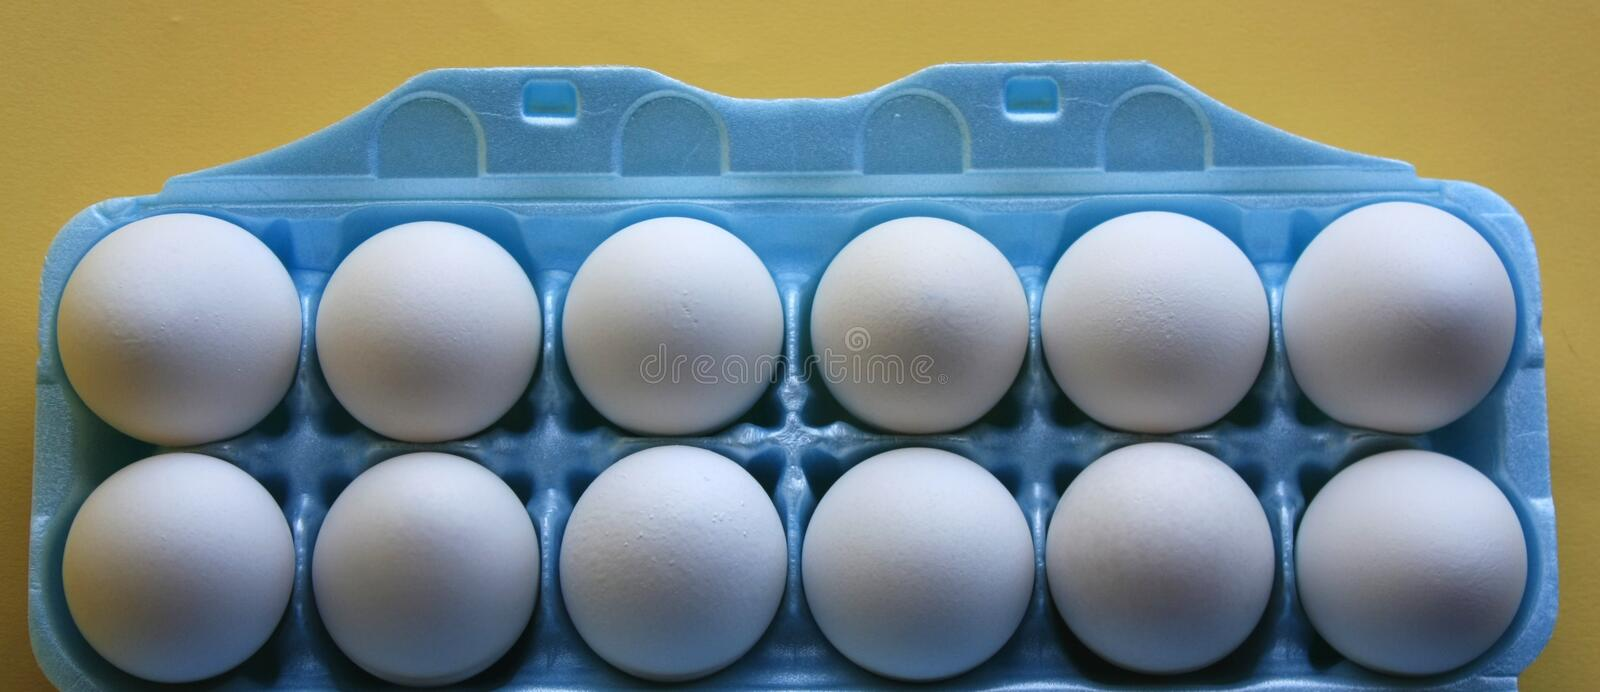 Egg carton and egg holder. Blue egg carton with egg holder stock photo